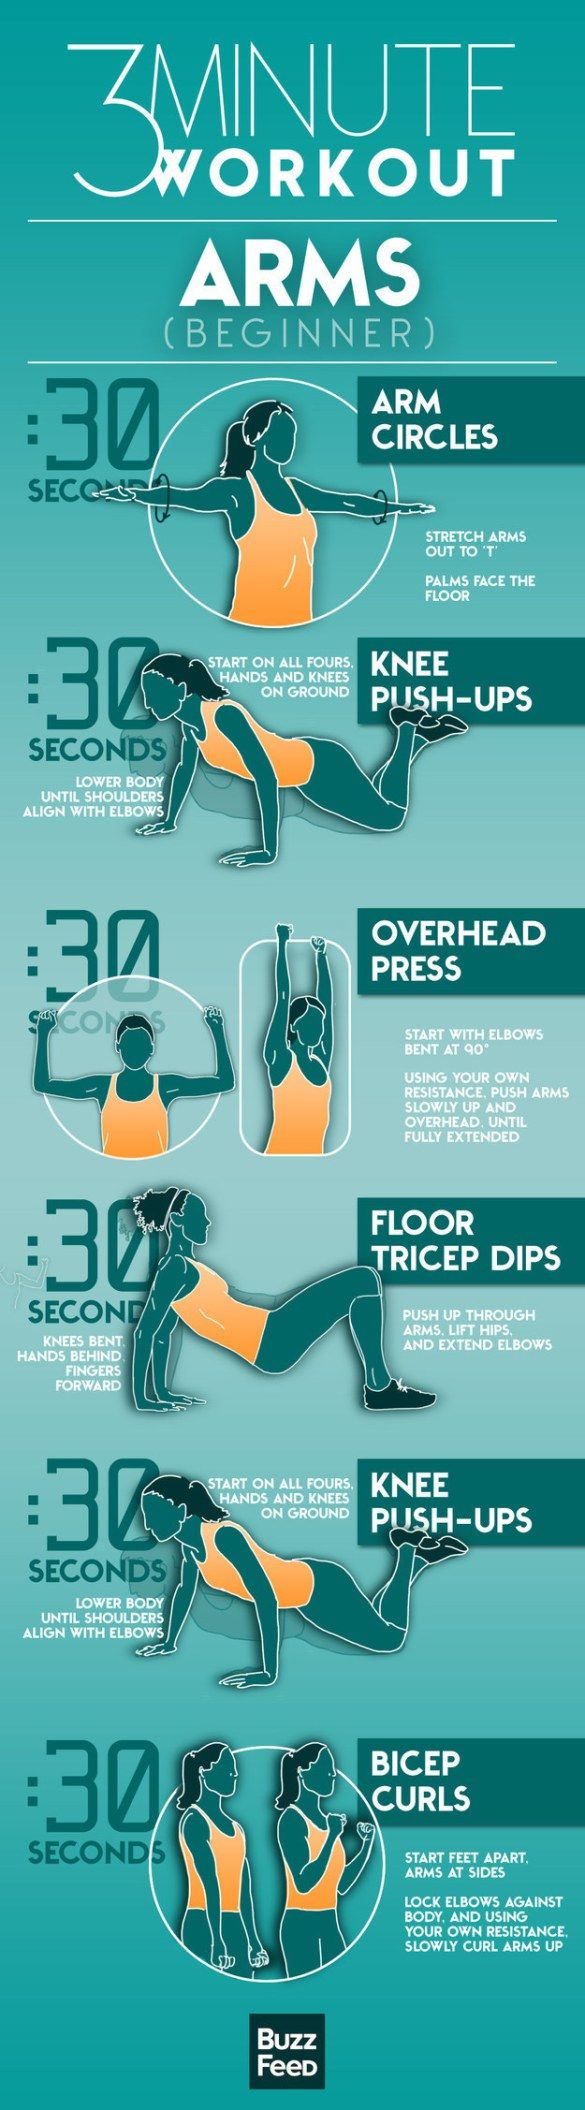 8 3 minute workout